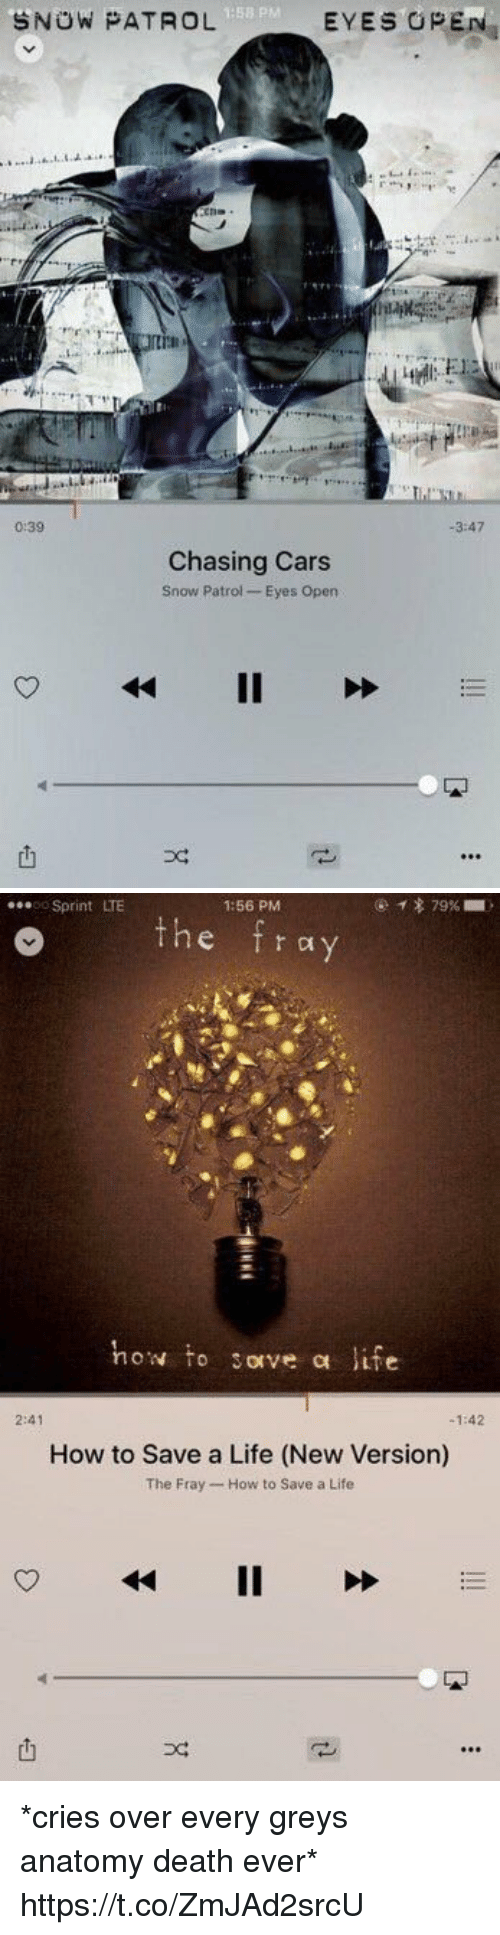 the fray: 1:58  SNOW PATROL  EYES OPEN  0:39  -3:47  Chasing Cars  Snow Patrol Eyes Open   Sprint LTE  1:56 PM  o the fray  how to sove a life  2:41  -1:42  How to Save a Life (New Version)  The Fray- How to Save a Life  4411 >>  也 *cries over every greys anatomy death ever* https://t.co/ZmJAd2srcU